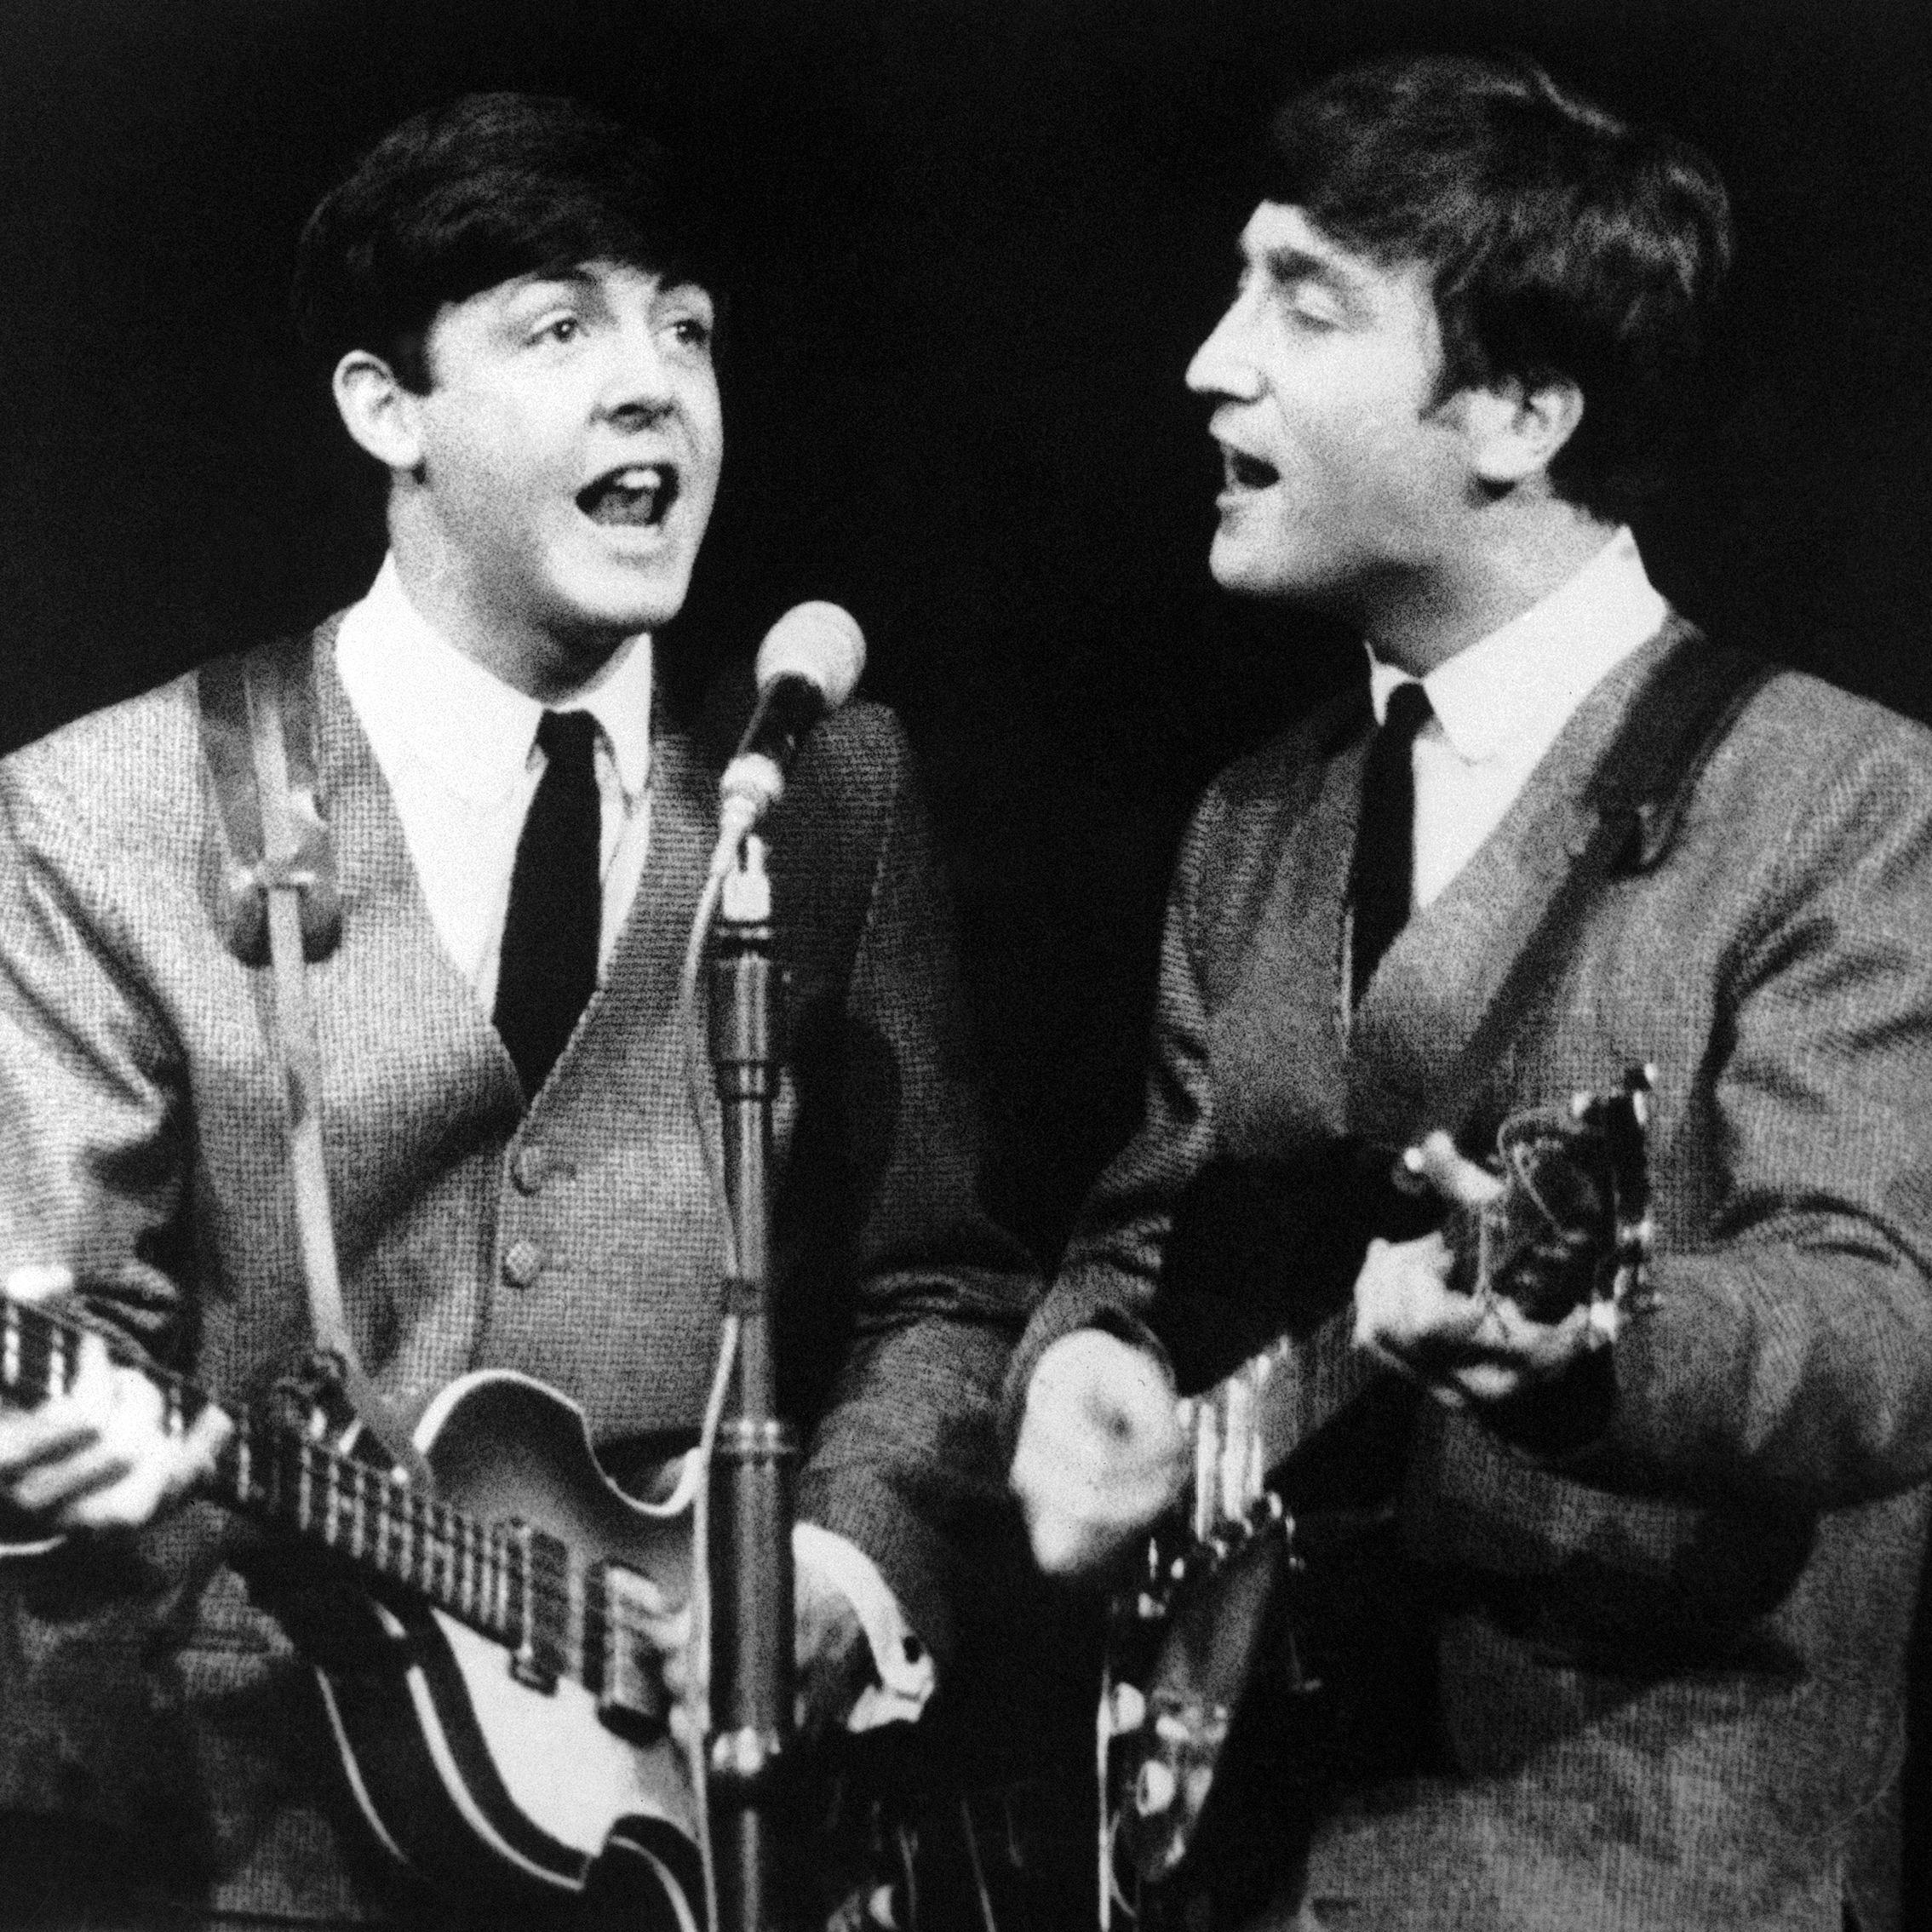 Paul McCartney, left, and John Lennon, two members of the Beatles pop group during a concert in London, on Nov. 11, 1963.